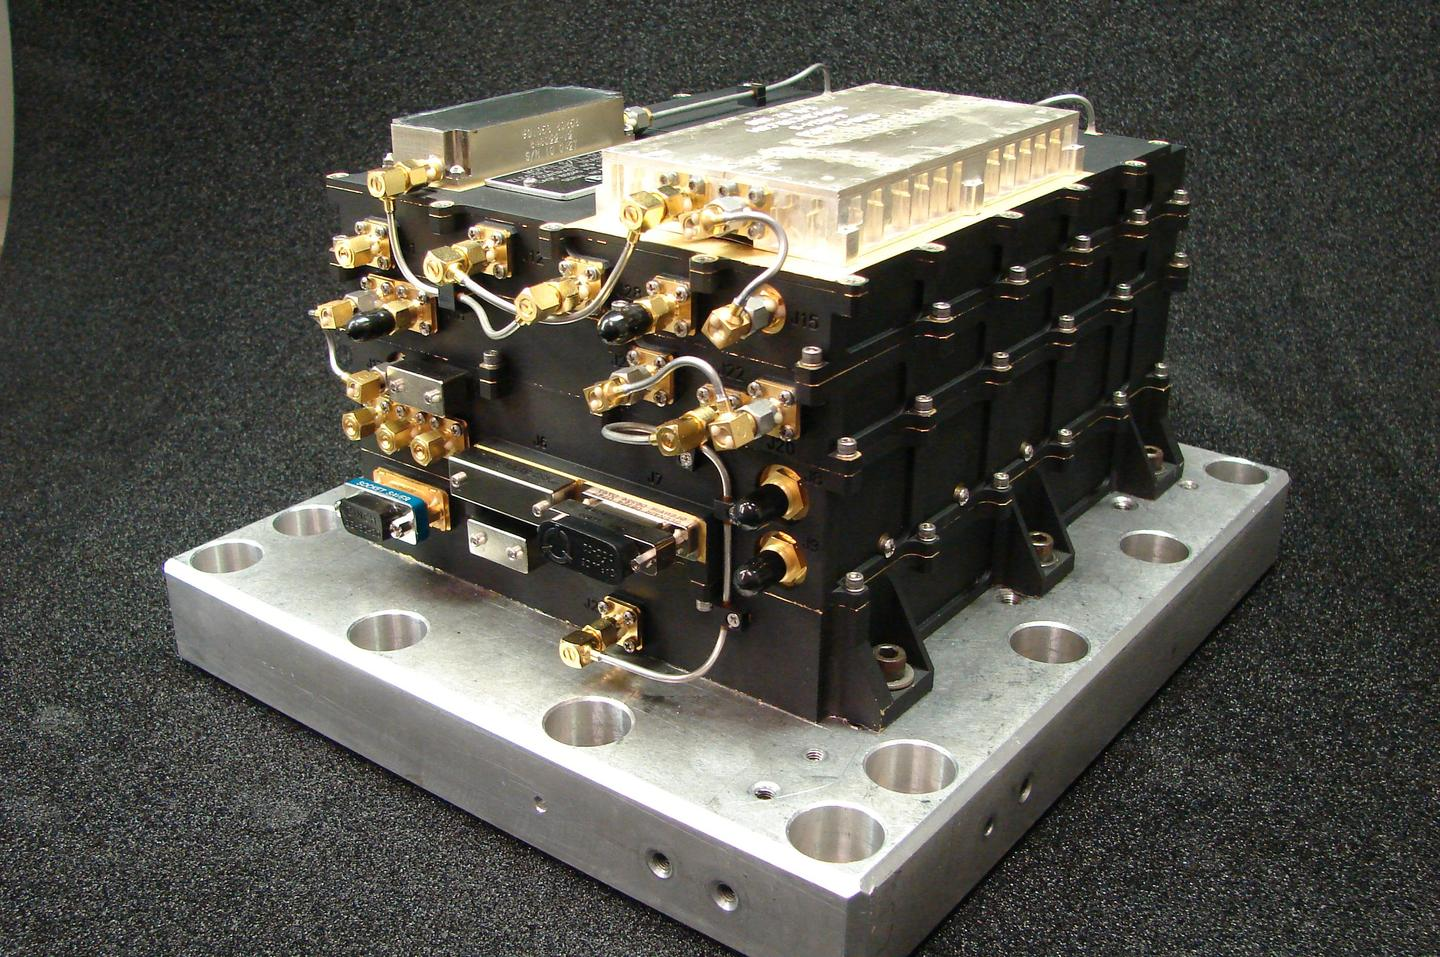 MAVEN's Electra UHF Transceiver (Photo: NASA/JPL-Caltech)